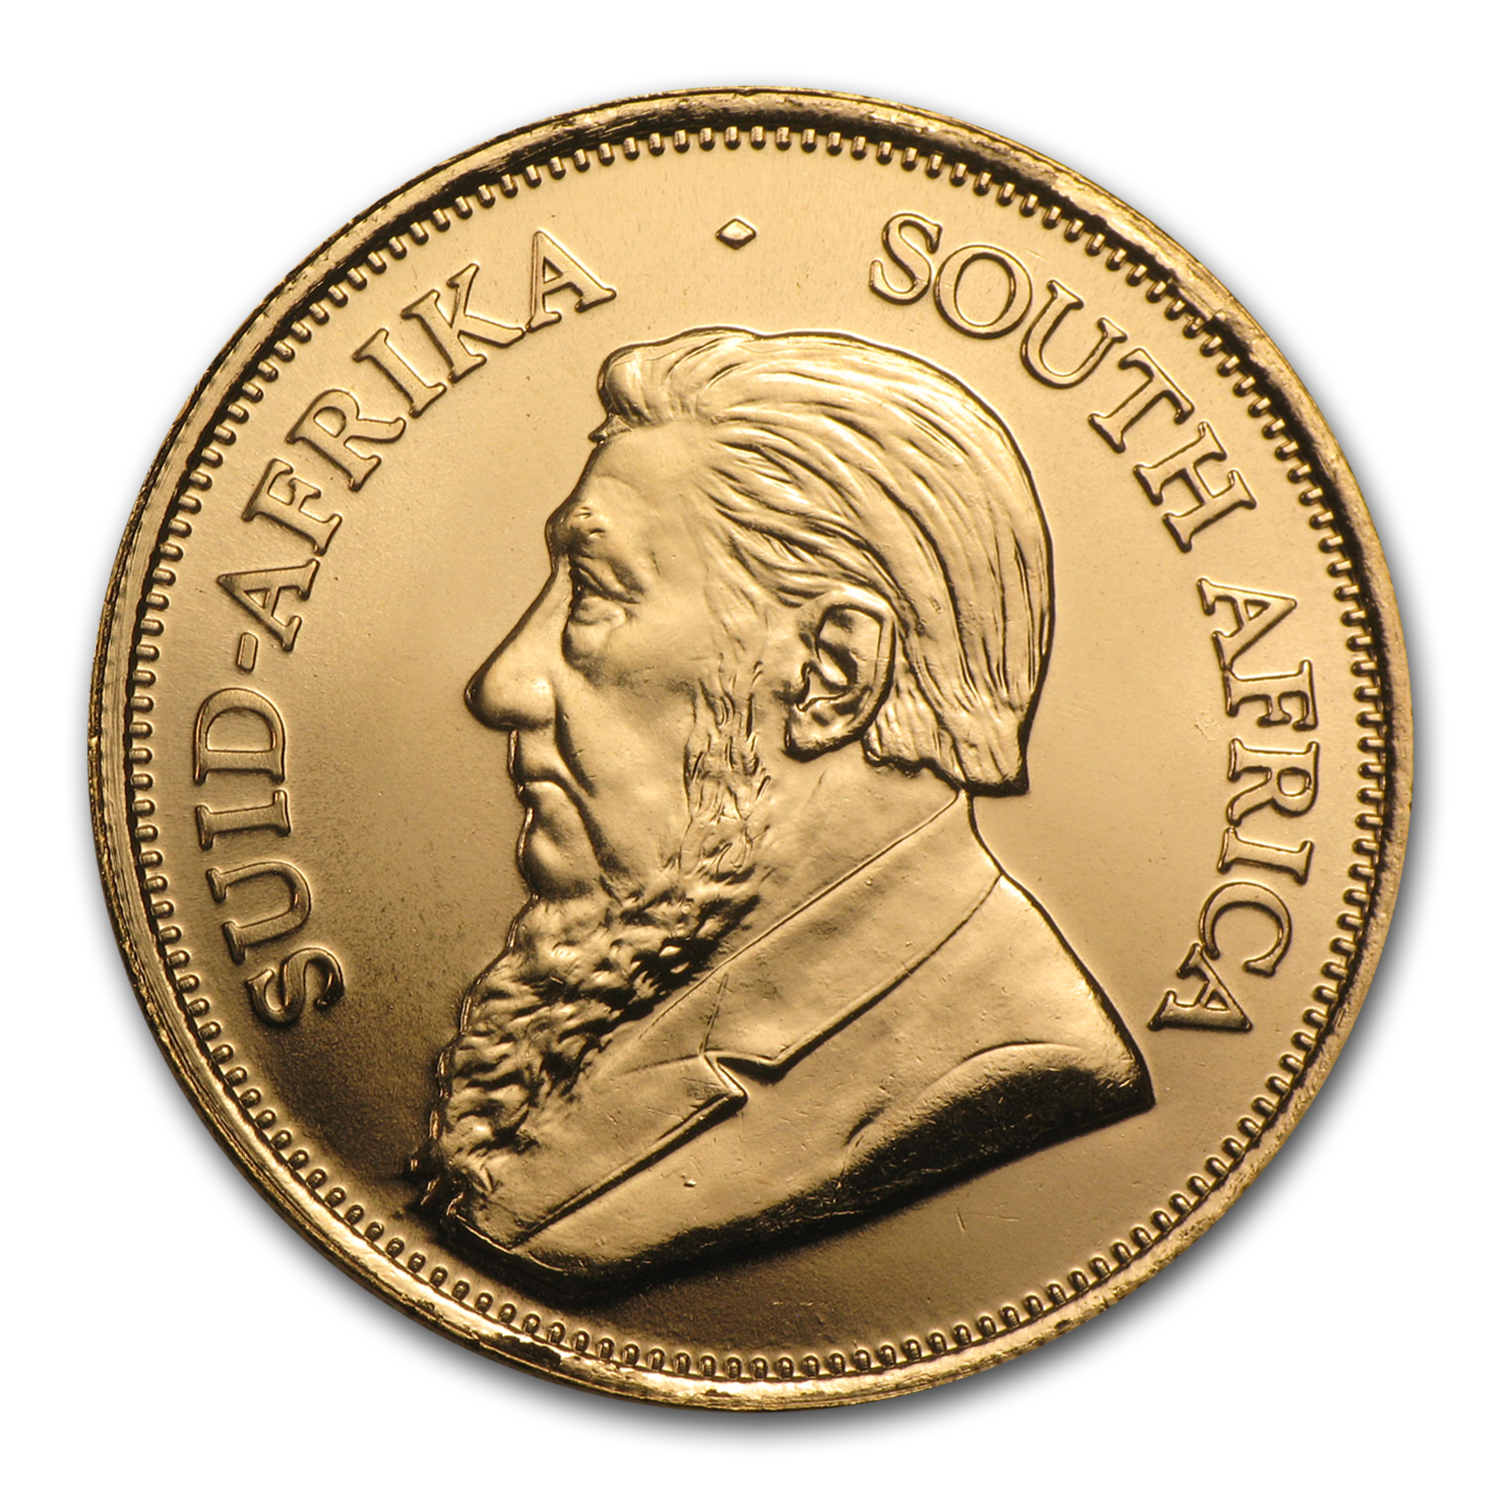 2004 1 oz Gold South African Krugerrand